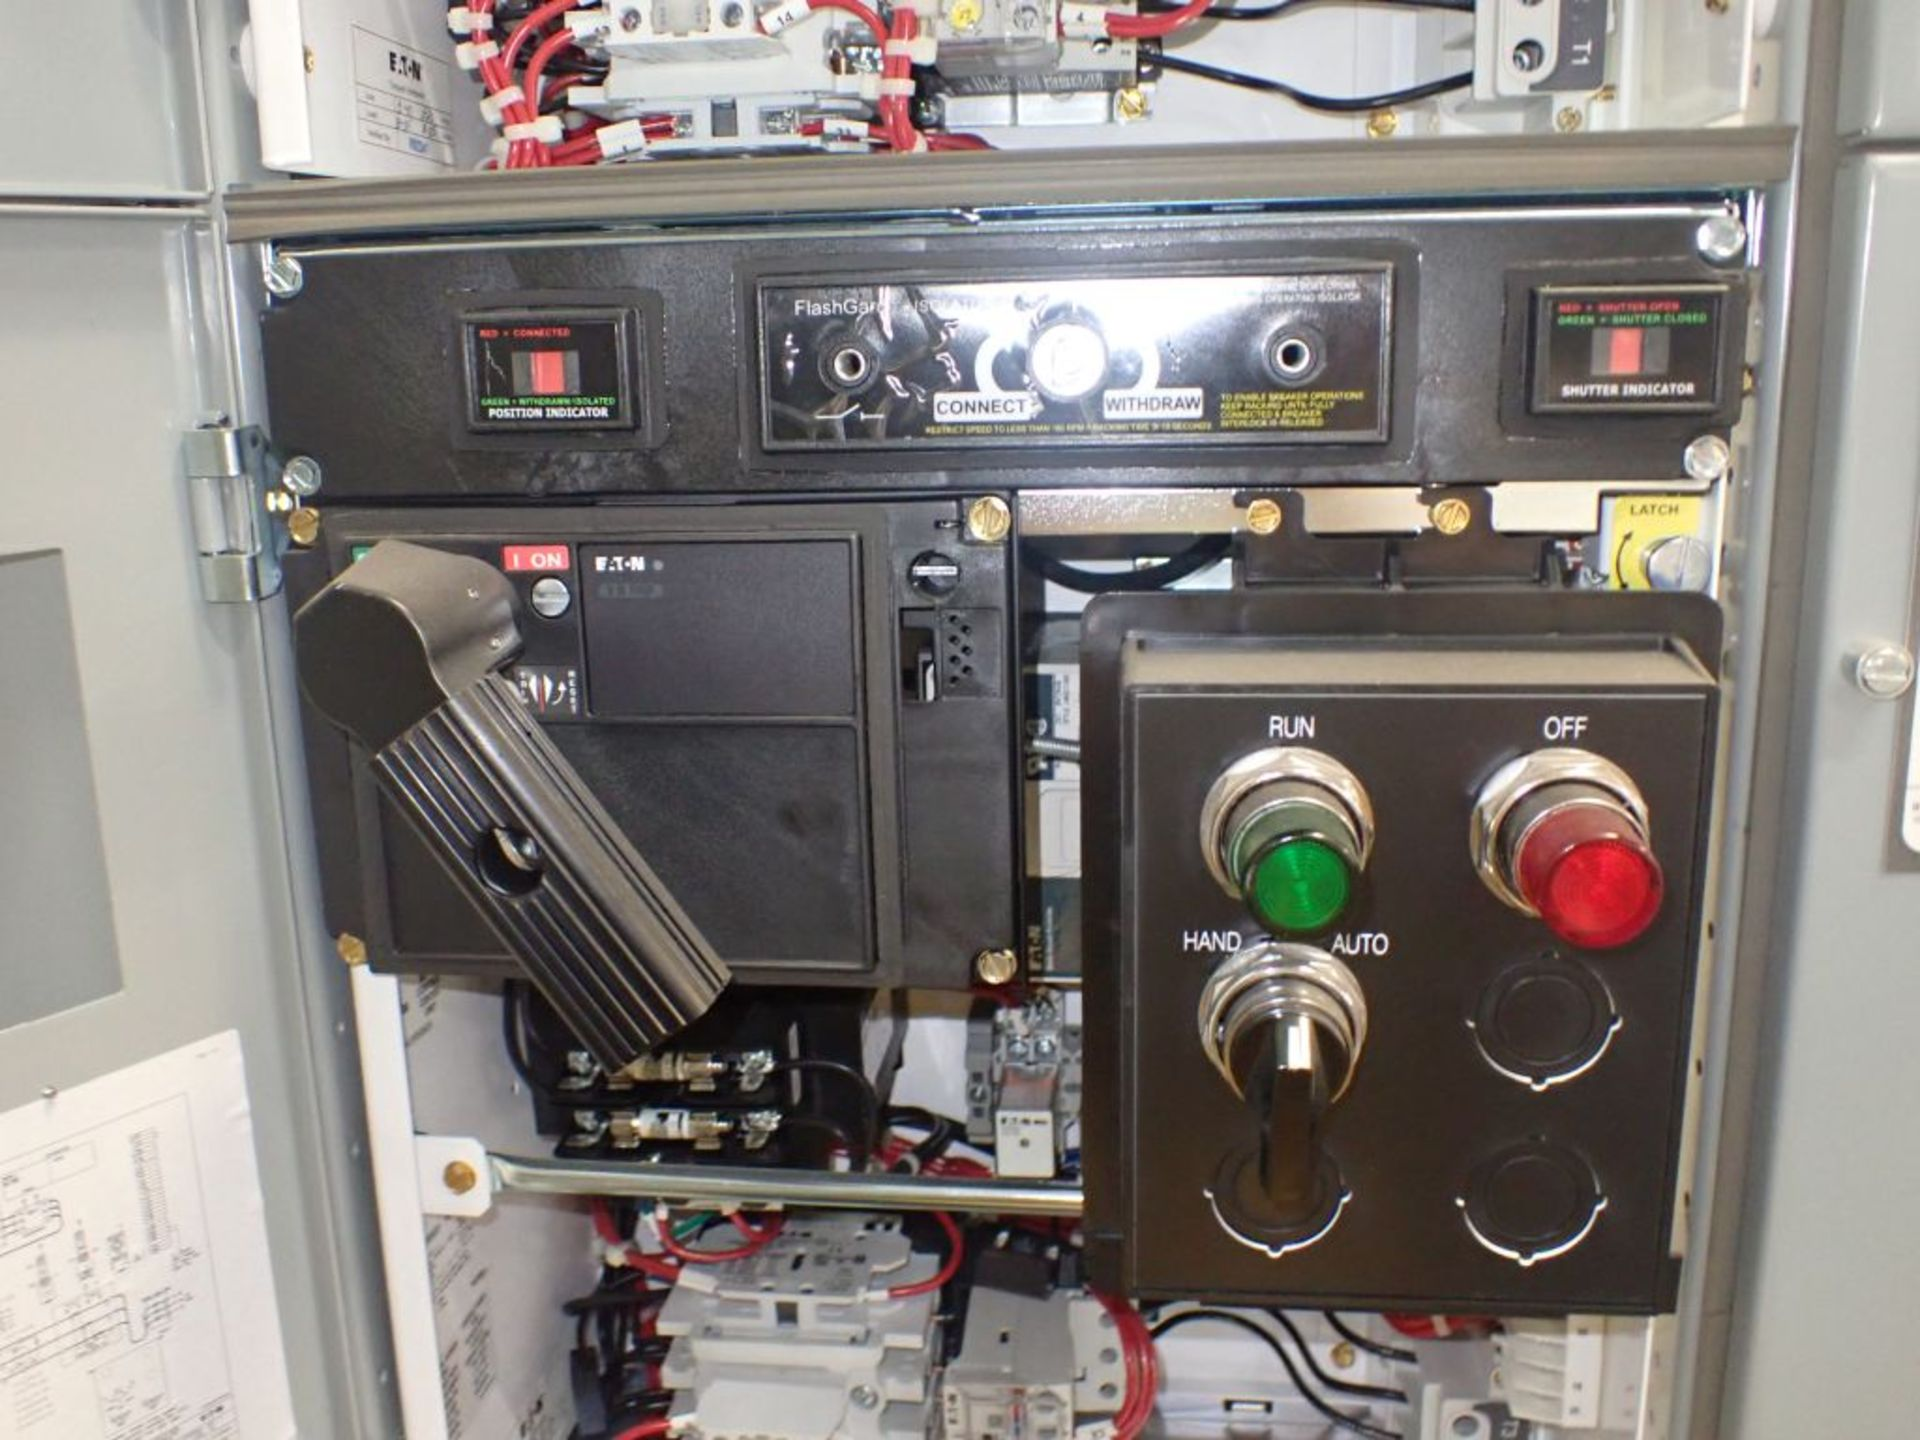 Eaton Freedom Flashgard Motor Control Center w/Components | (5) F206-15A-10HP; (4) F206-30A-10HP; ( - Image 38 of 84